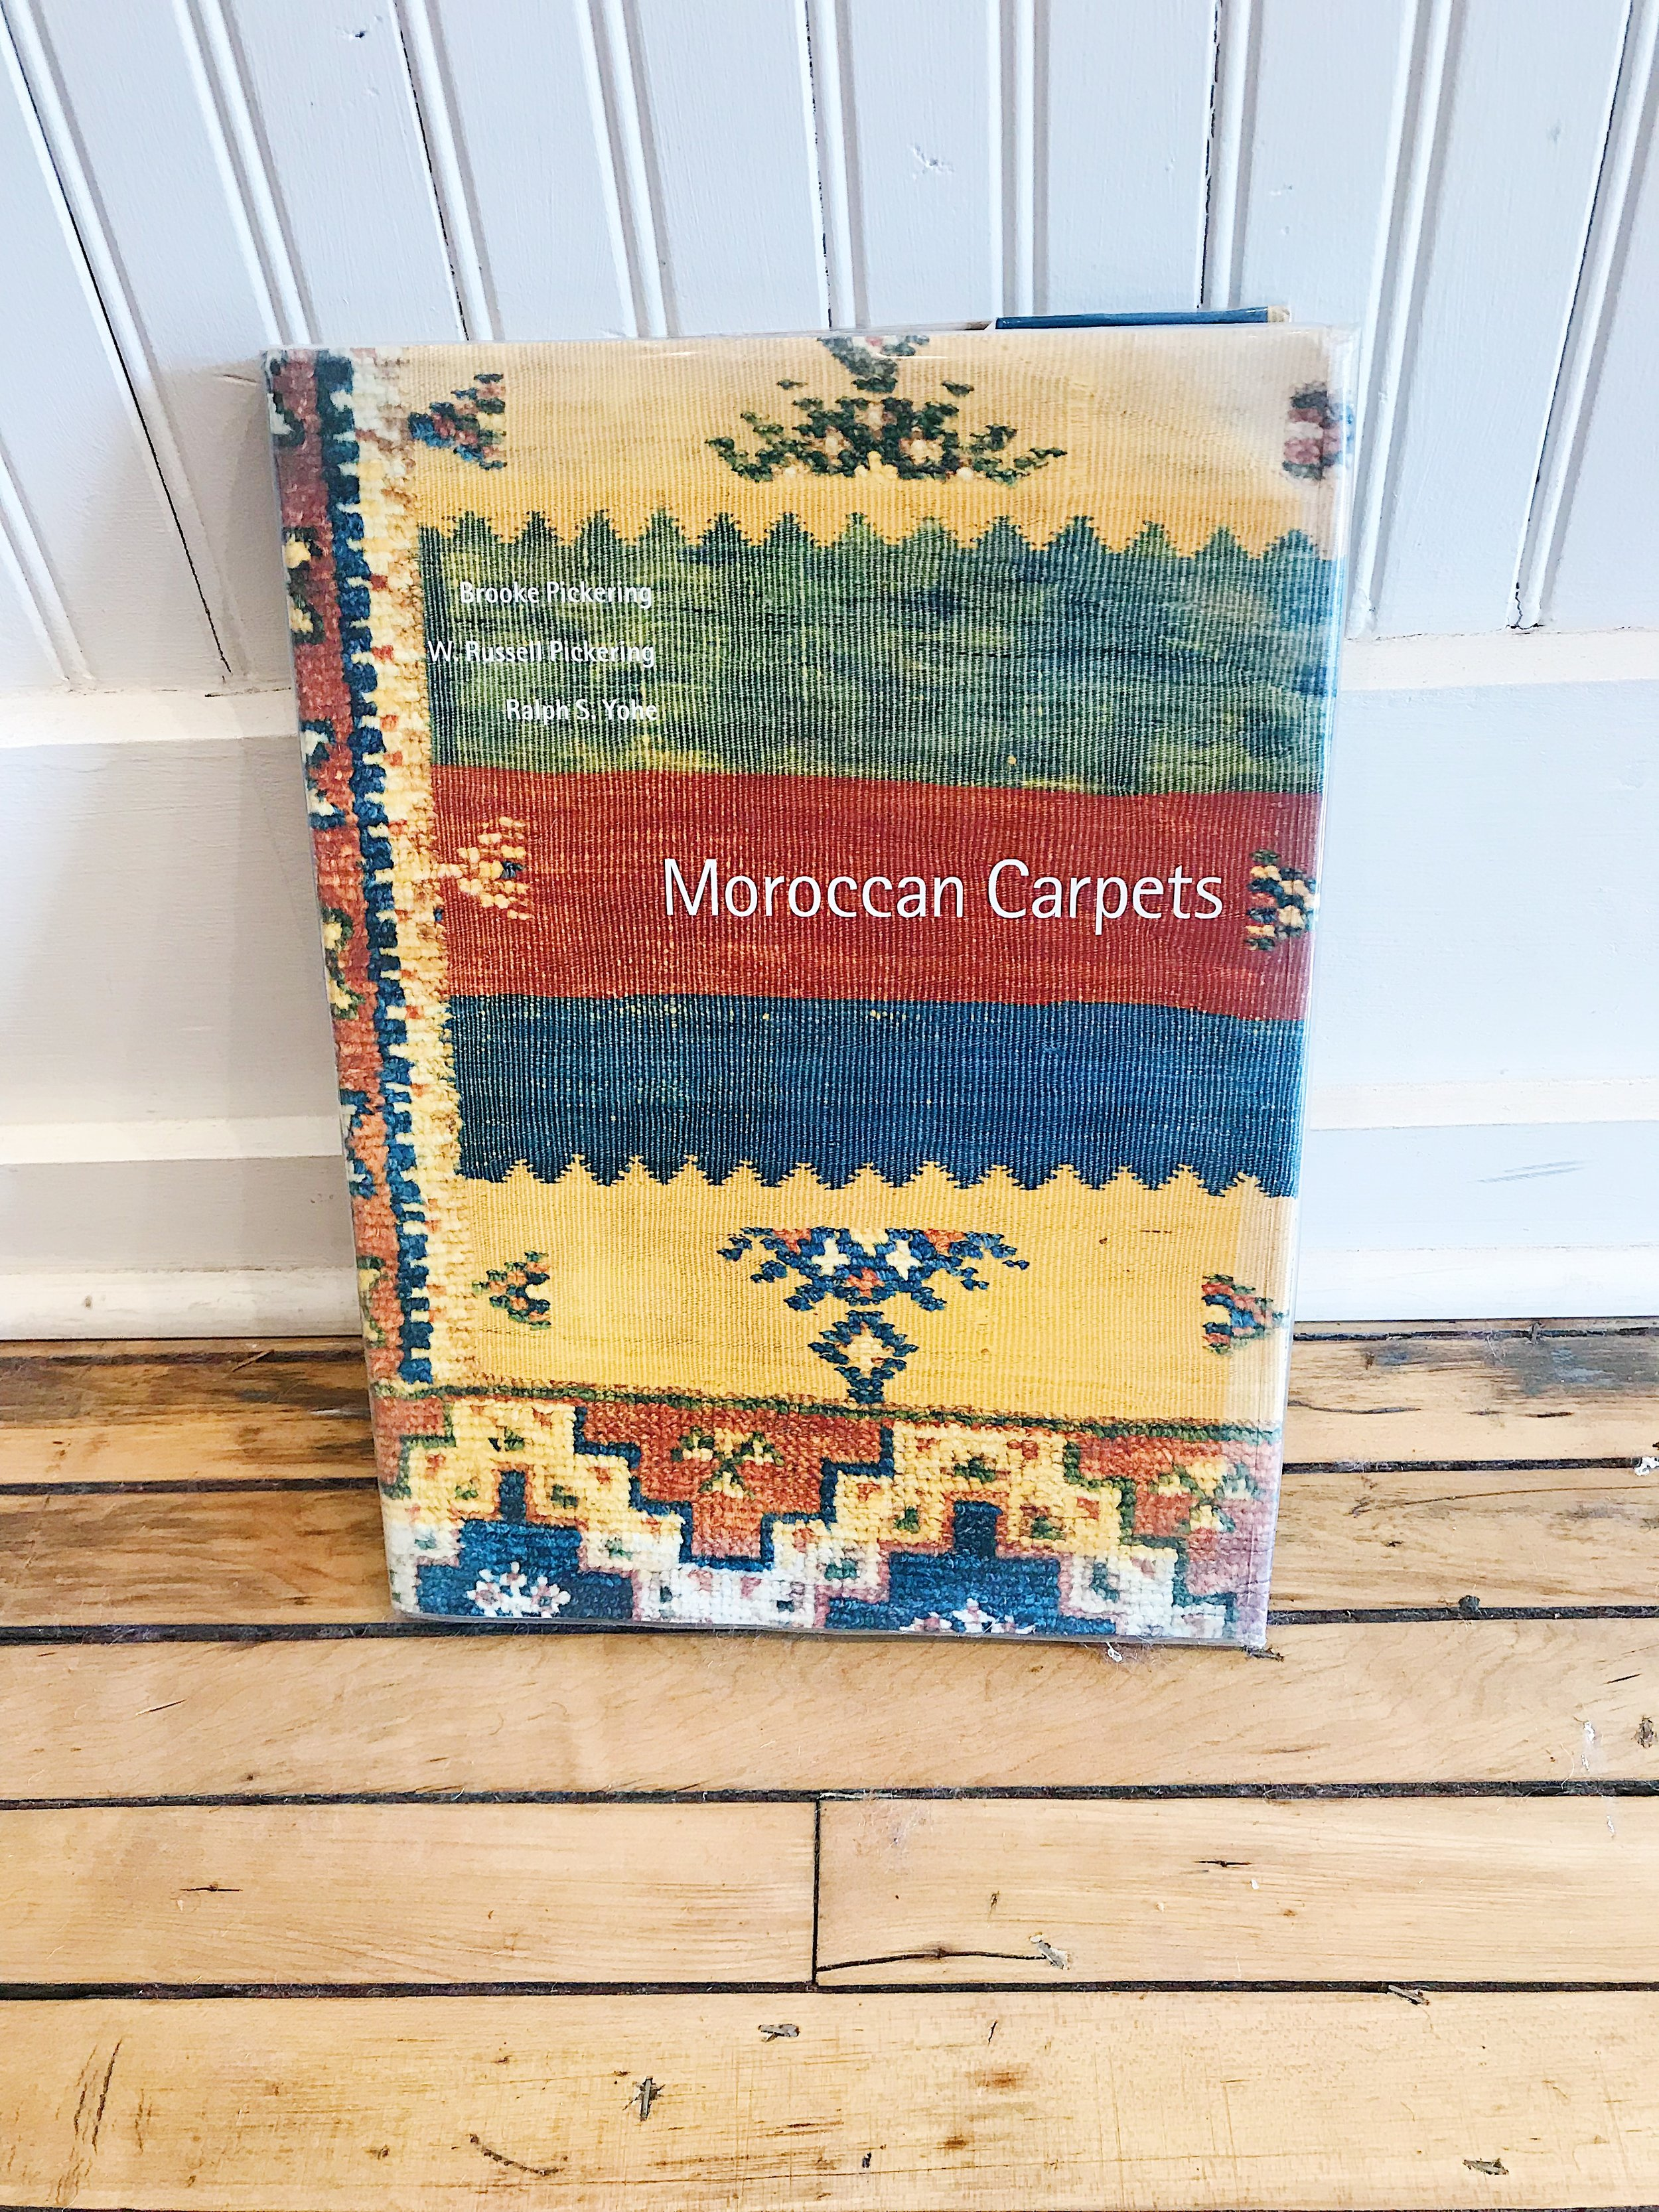 """""""Moroccan Carpets,"""" by Brooke Pickering, W. Russell Pickering, Ralph S. Yohe 1994"""